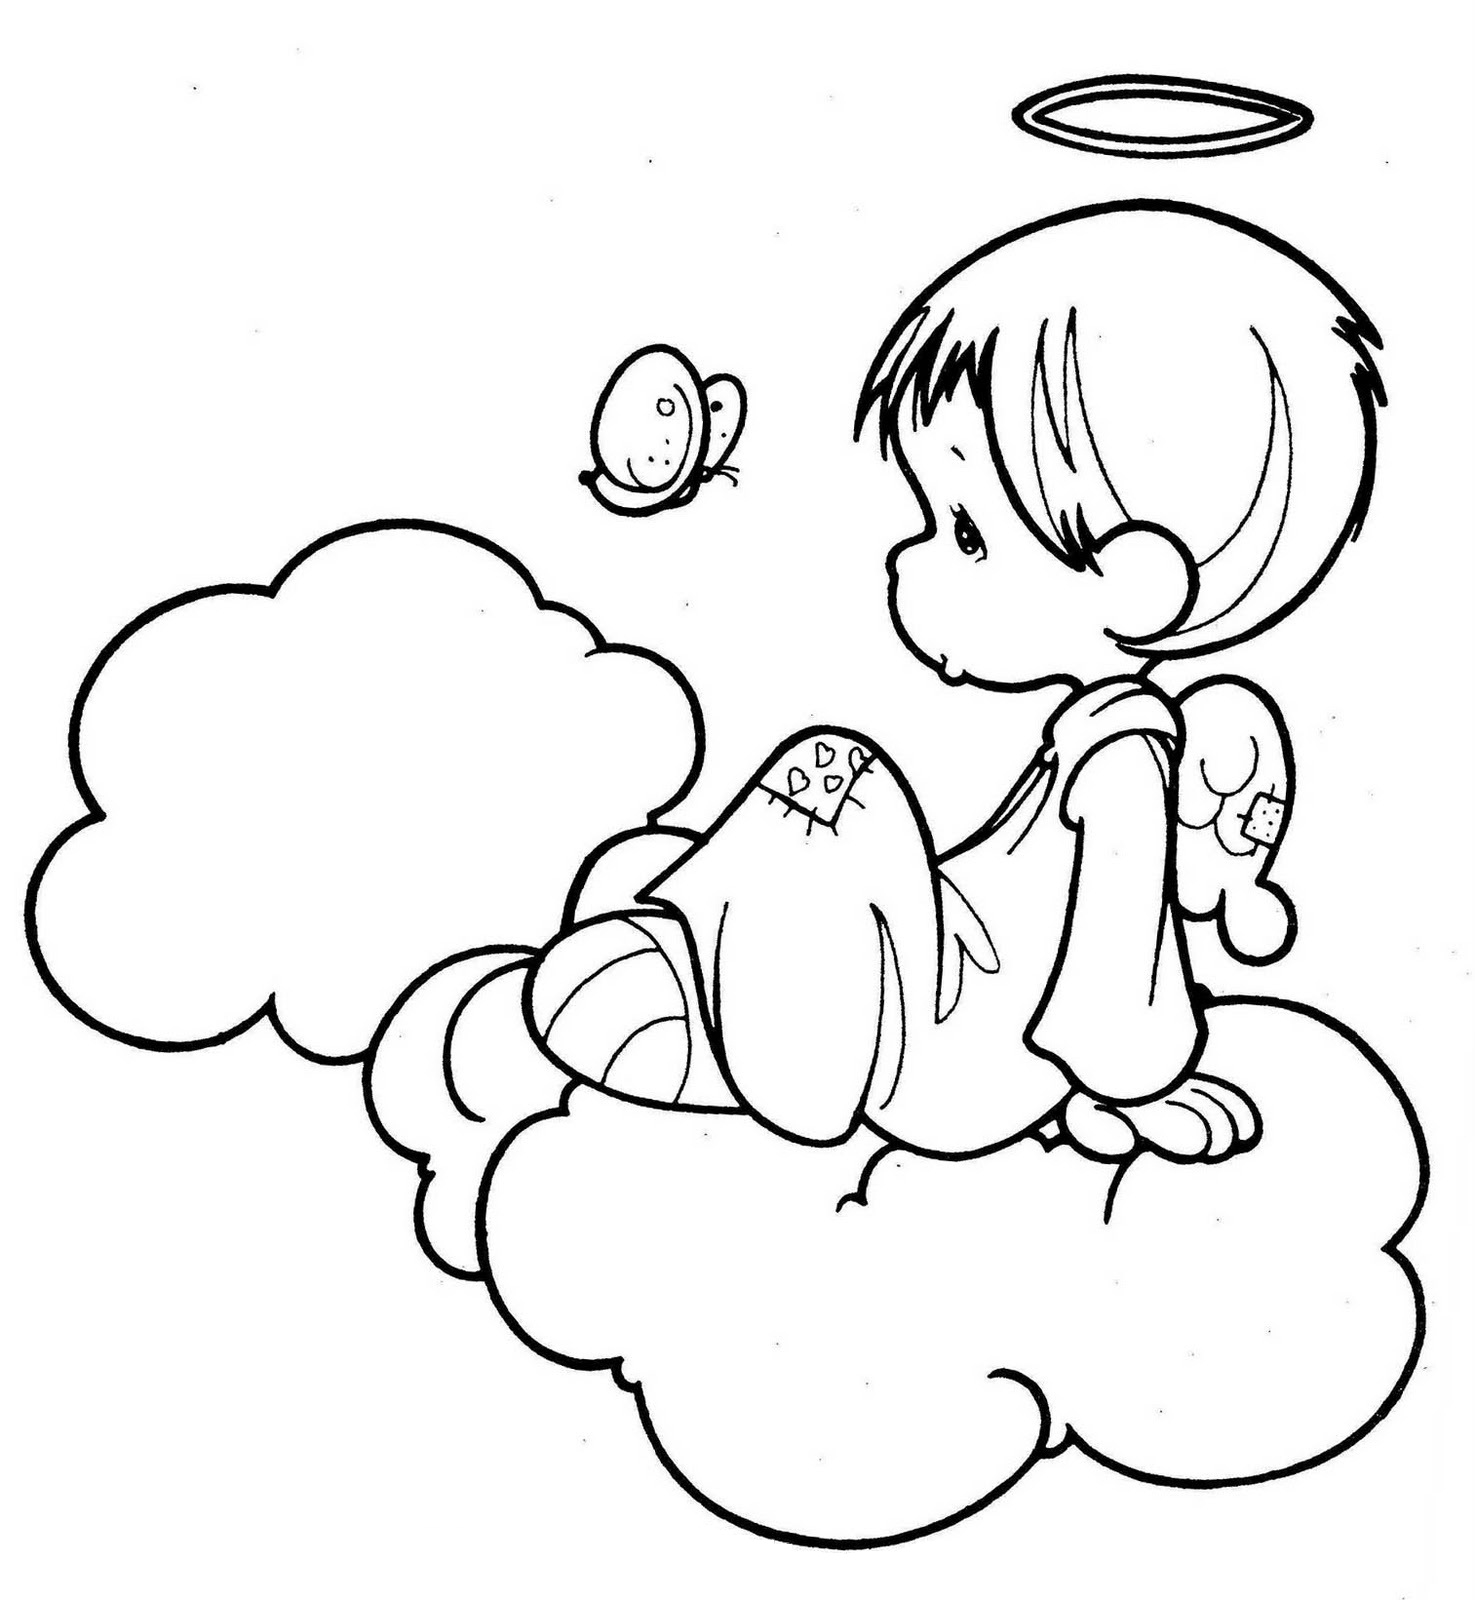 coloring angel kids free christmas coloring pages retro angels the angel coloring kids